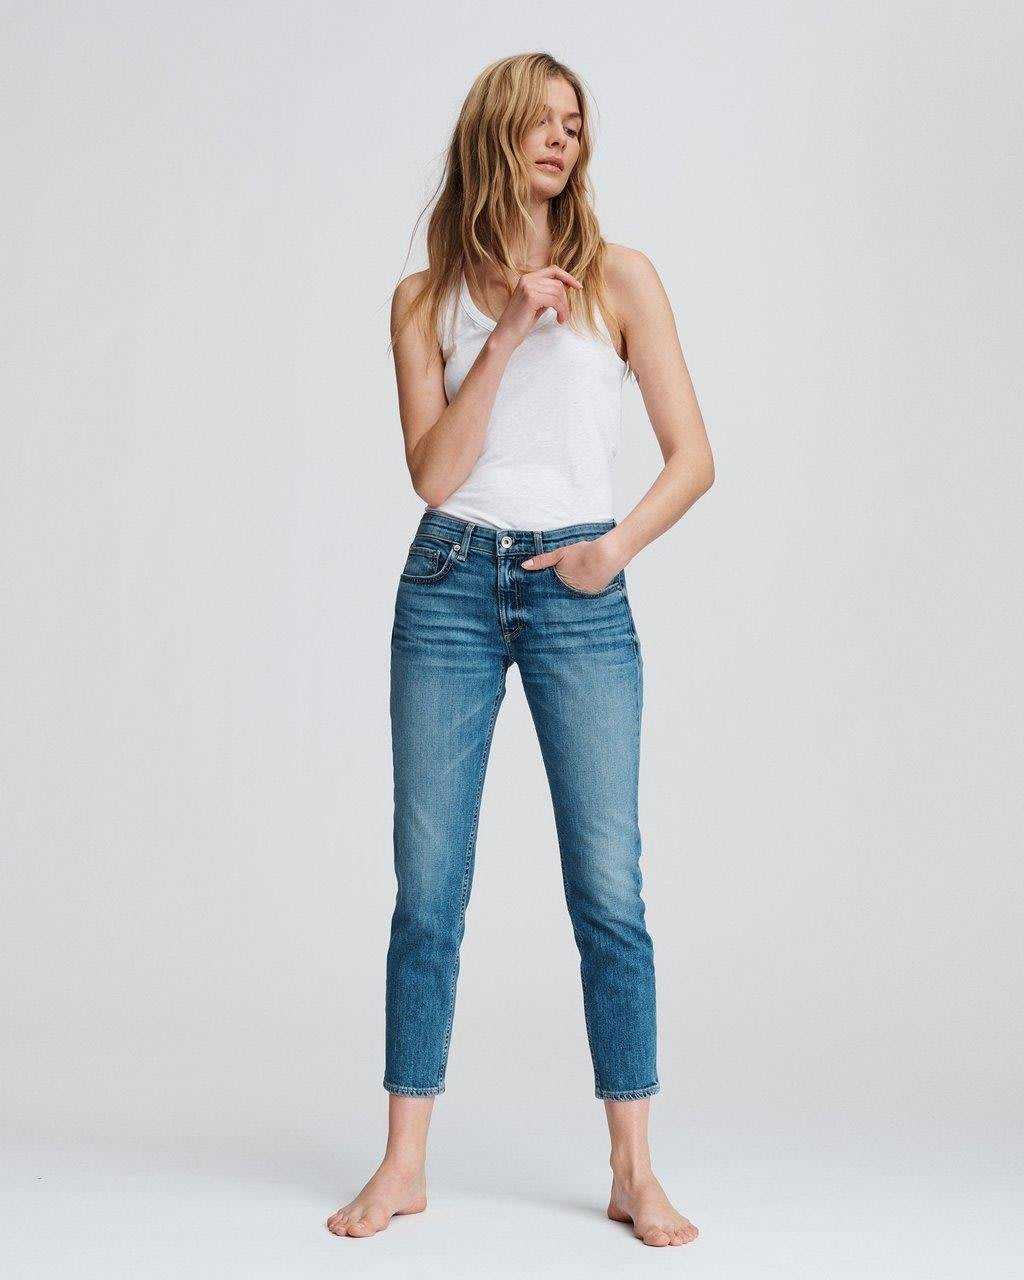 [在澳現貨] 全新正品RAG & BONE Dre Low Rise Slim Boyfriend Jeans 現貨27